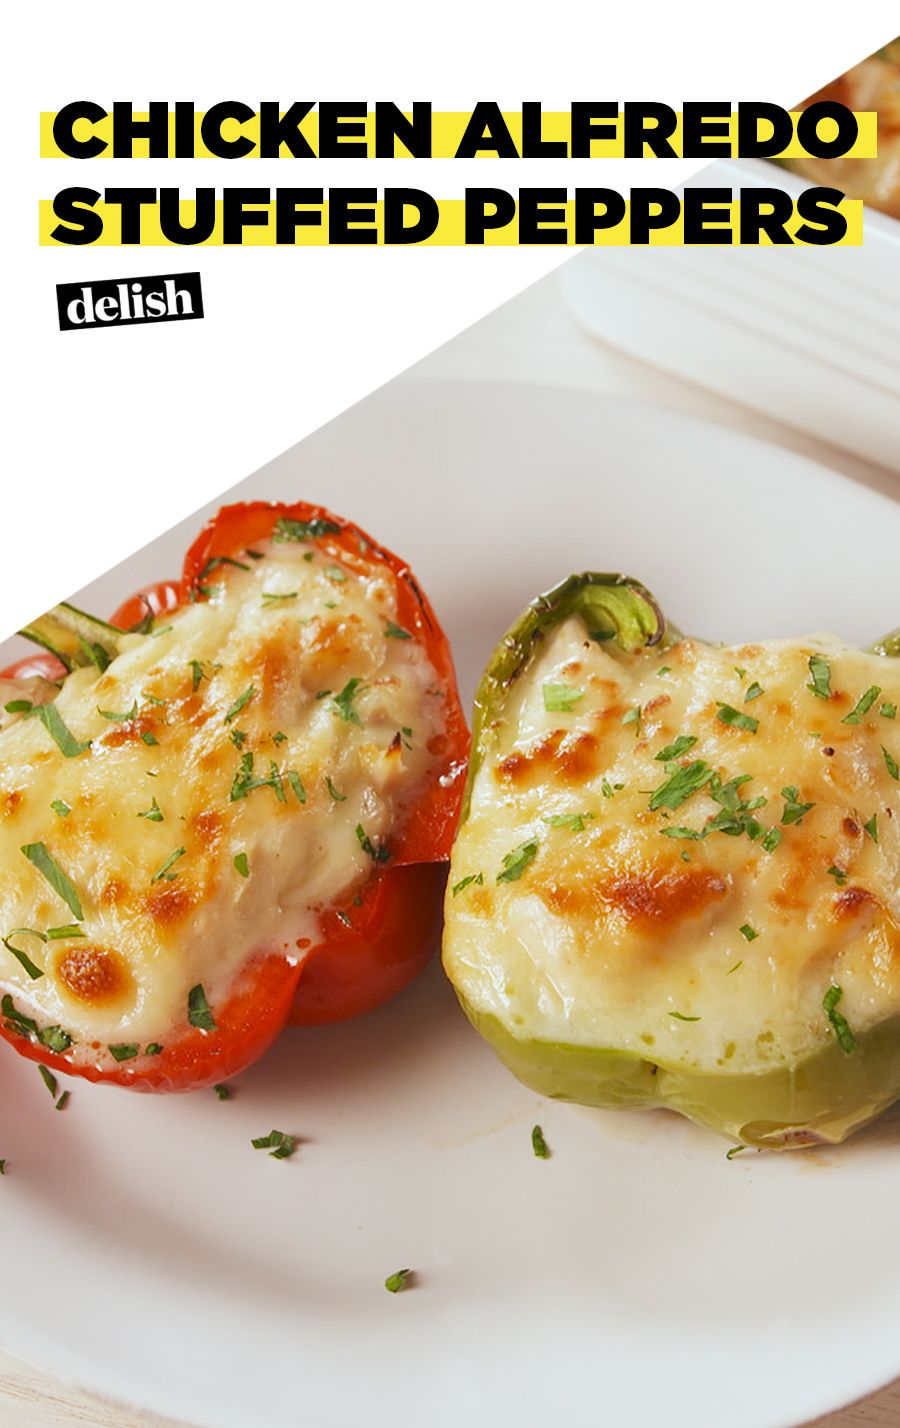 Indulge In These Rich Chicken Alfredo Stuffed Peppers Recipe Stuffed Peppers Chicken Alfredo Recipes Chicken Alfredo